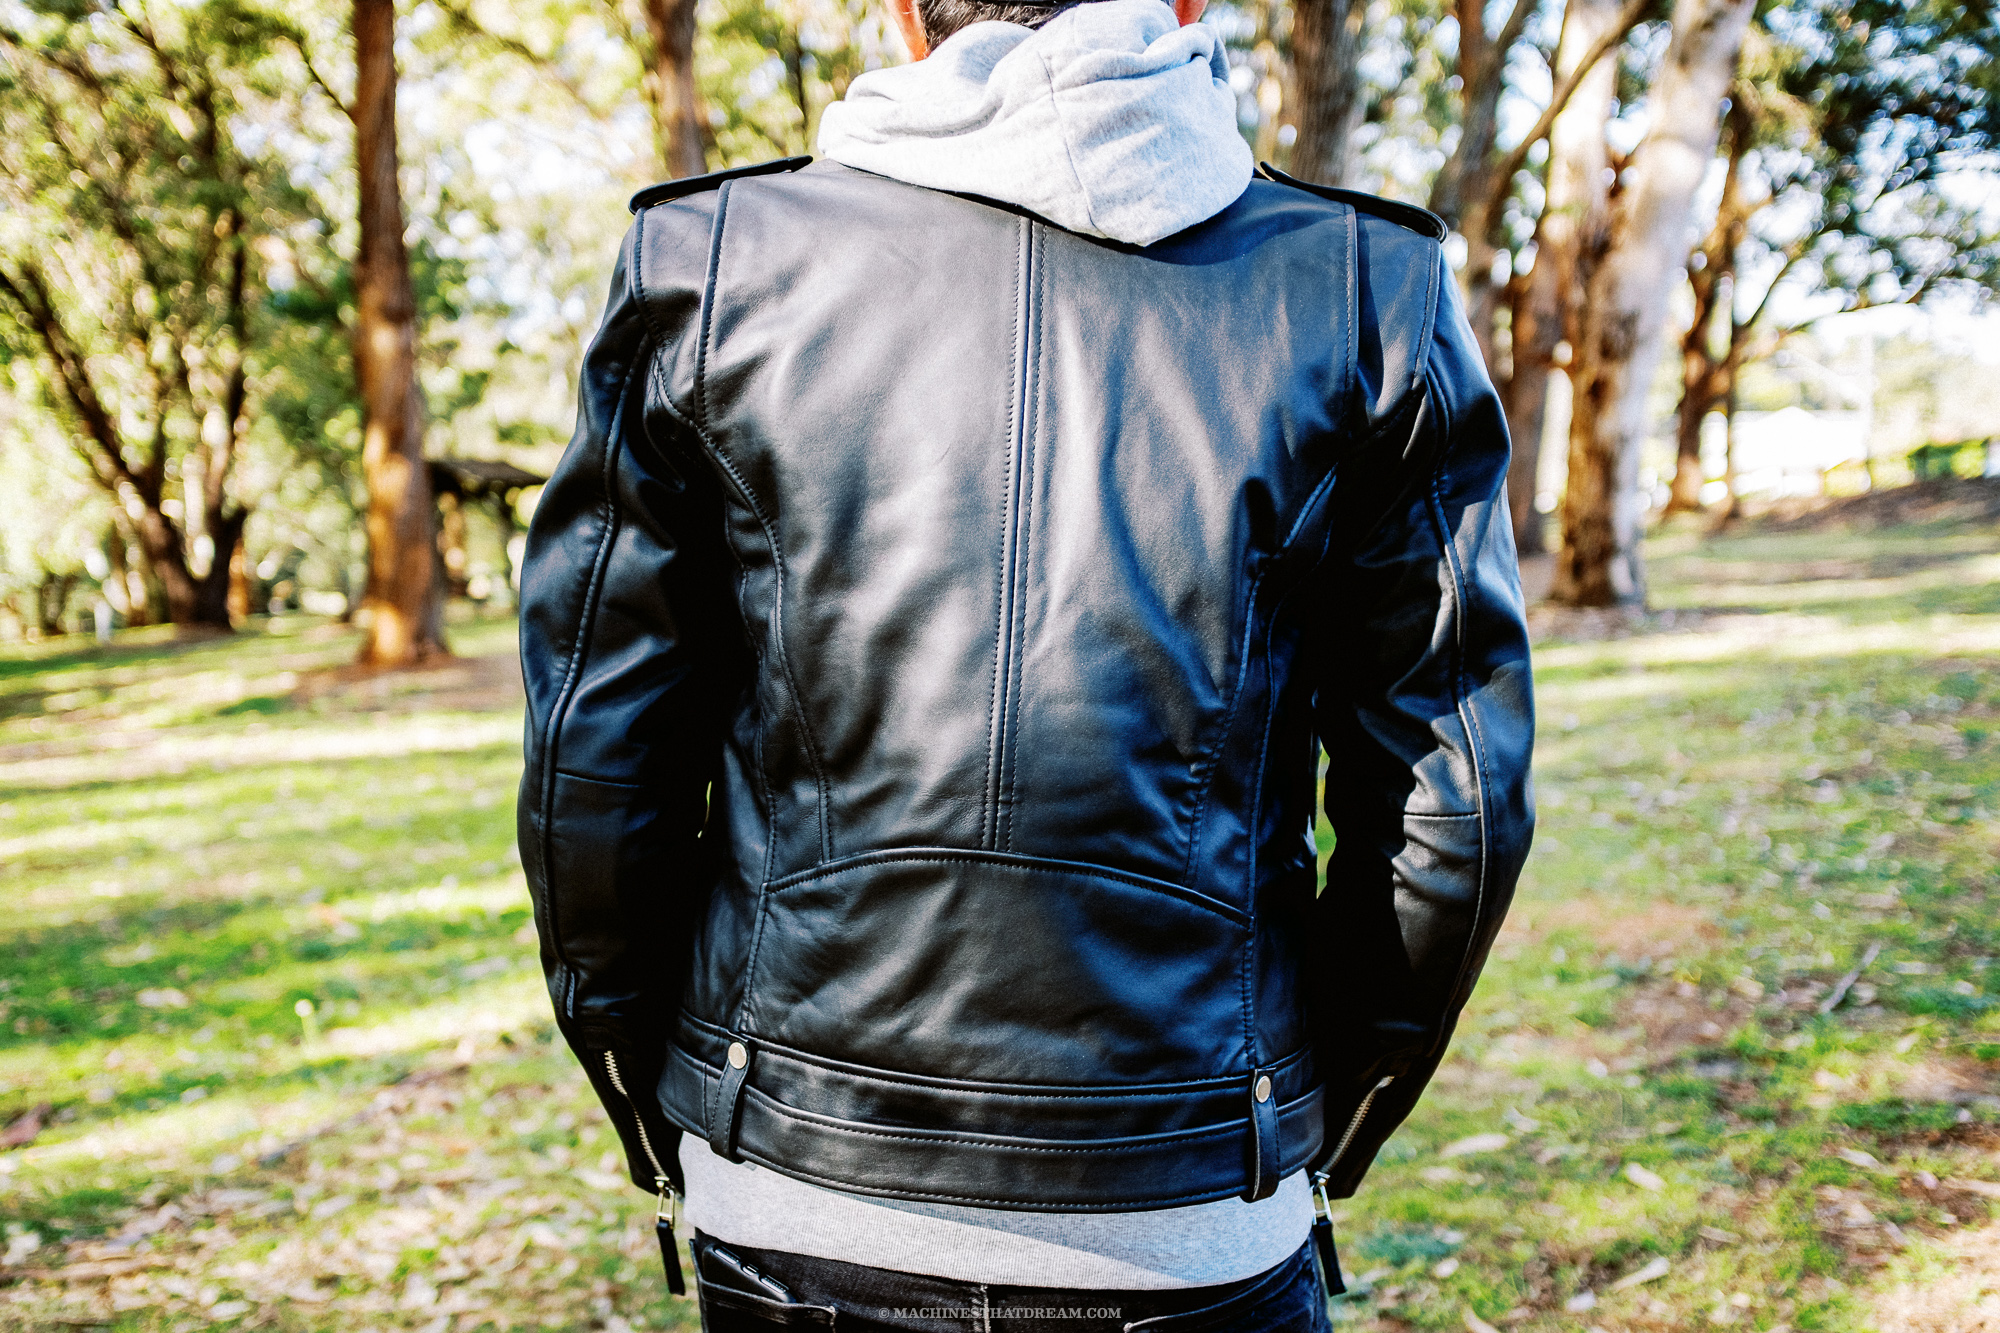 A strange man in a park wearing the Boda Skin's 'Voyager' leather motorcycle jacket